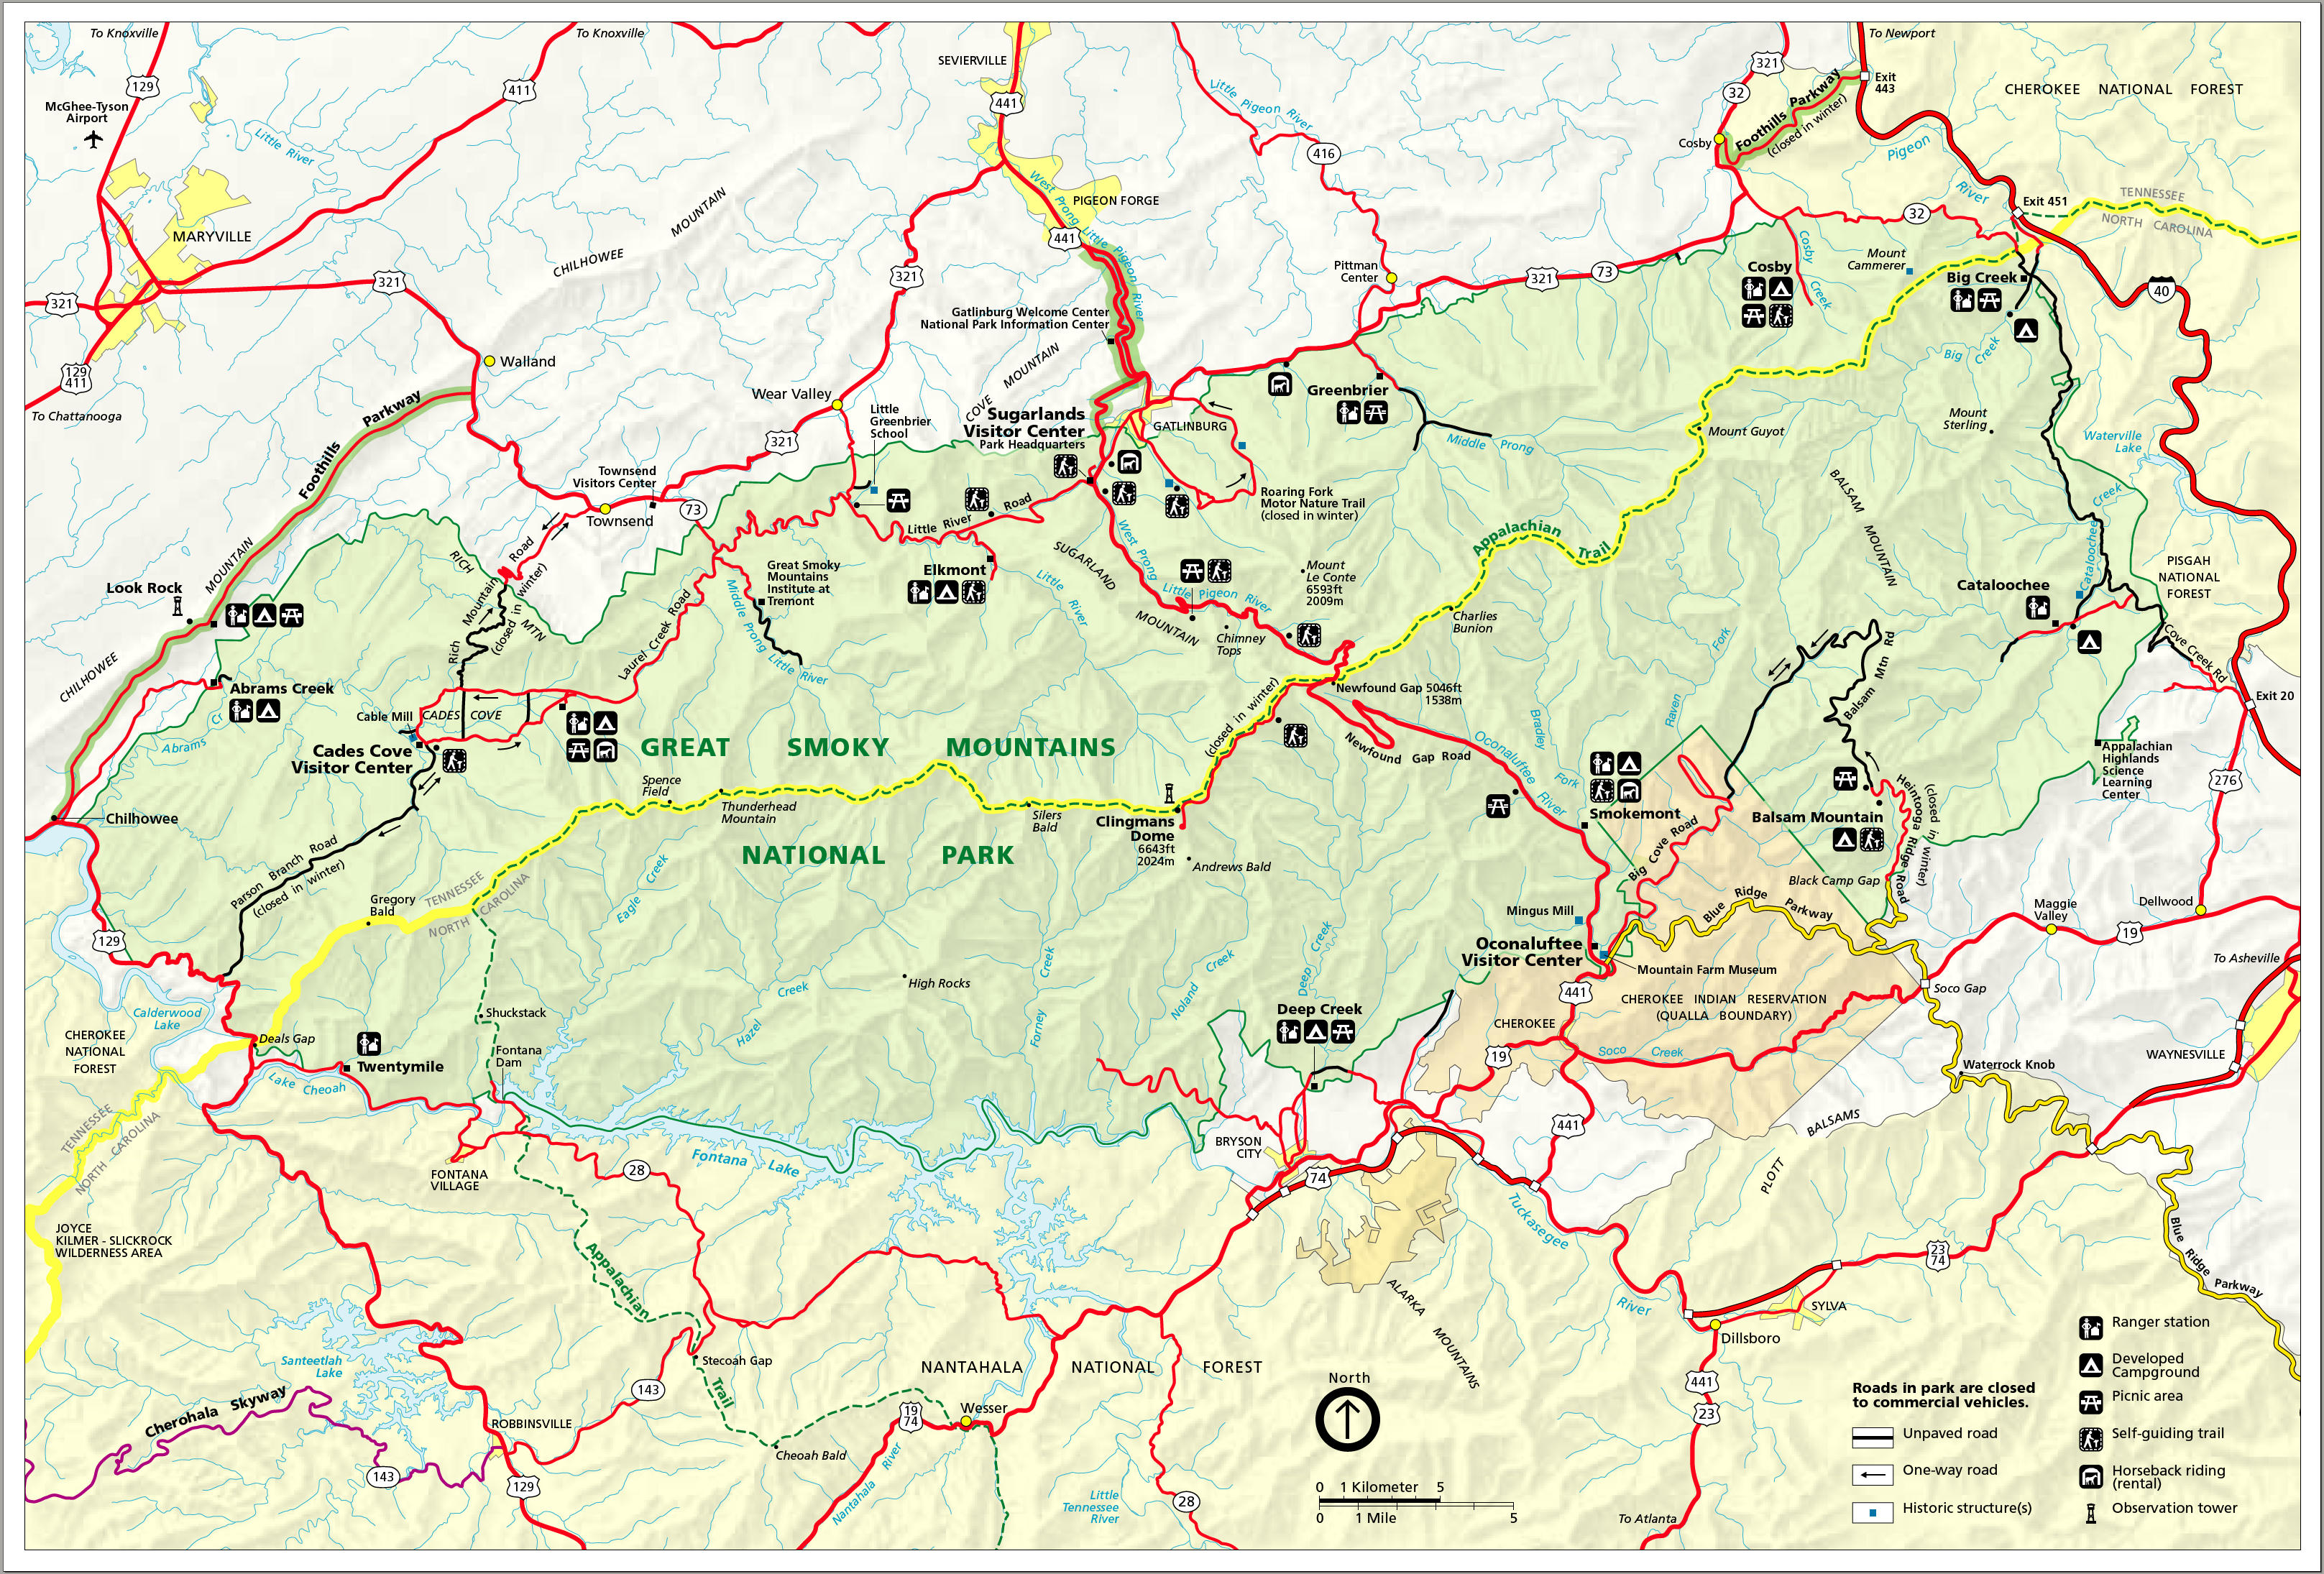 nantahala river map with Great Smokey Mountains National Park Trail Map on Fun Things Do Stanley Idaho in addition Waterrock Knob To Mt Lyn Lowry July 12 2016 besides Chattooga Wild Scenic River additionally Attractions as well Pisgah National Forest.